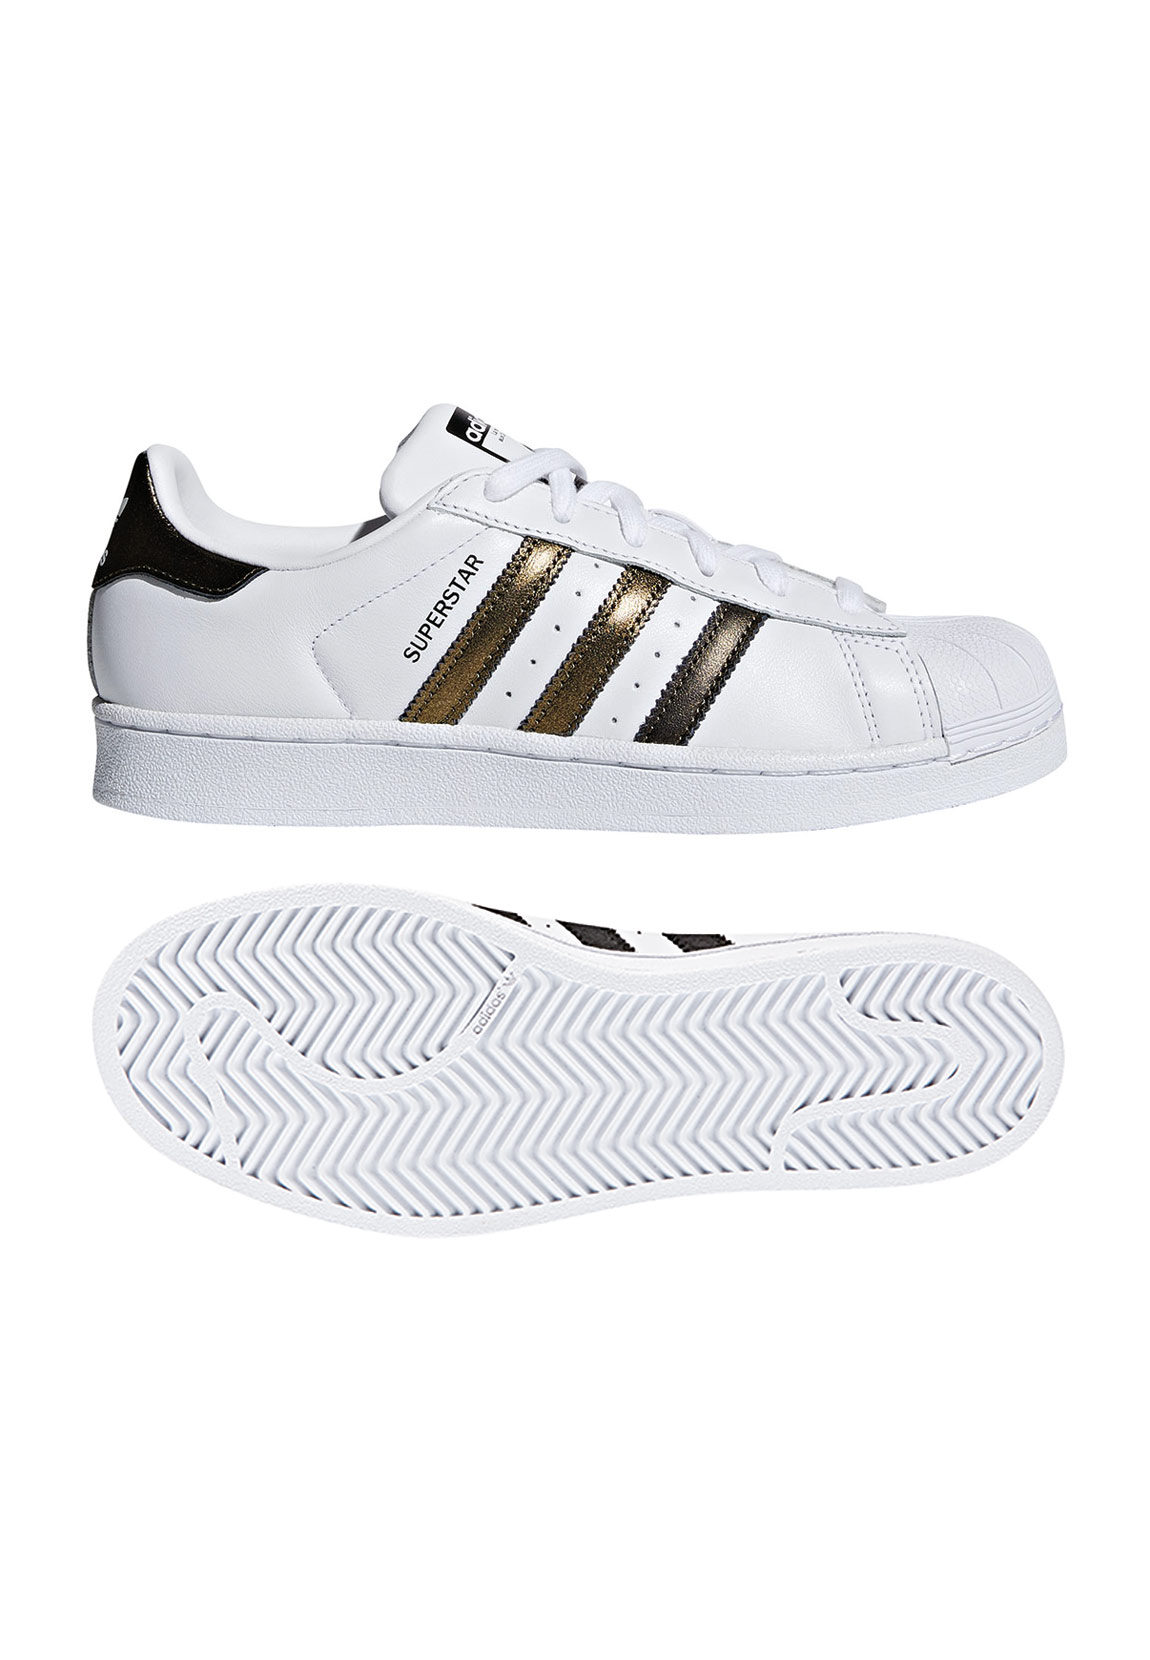 Adidas Originals Sneaker Damen SUPERSTAR W B41513 Weiß Gold